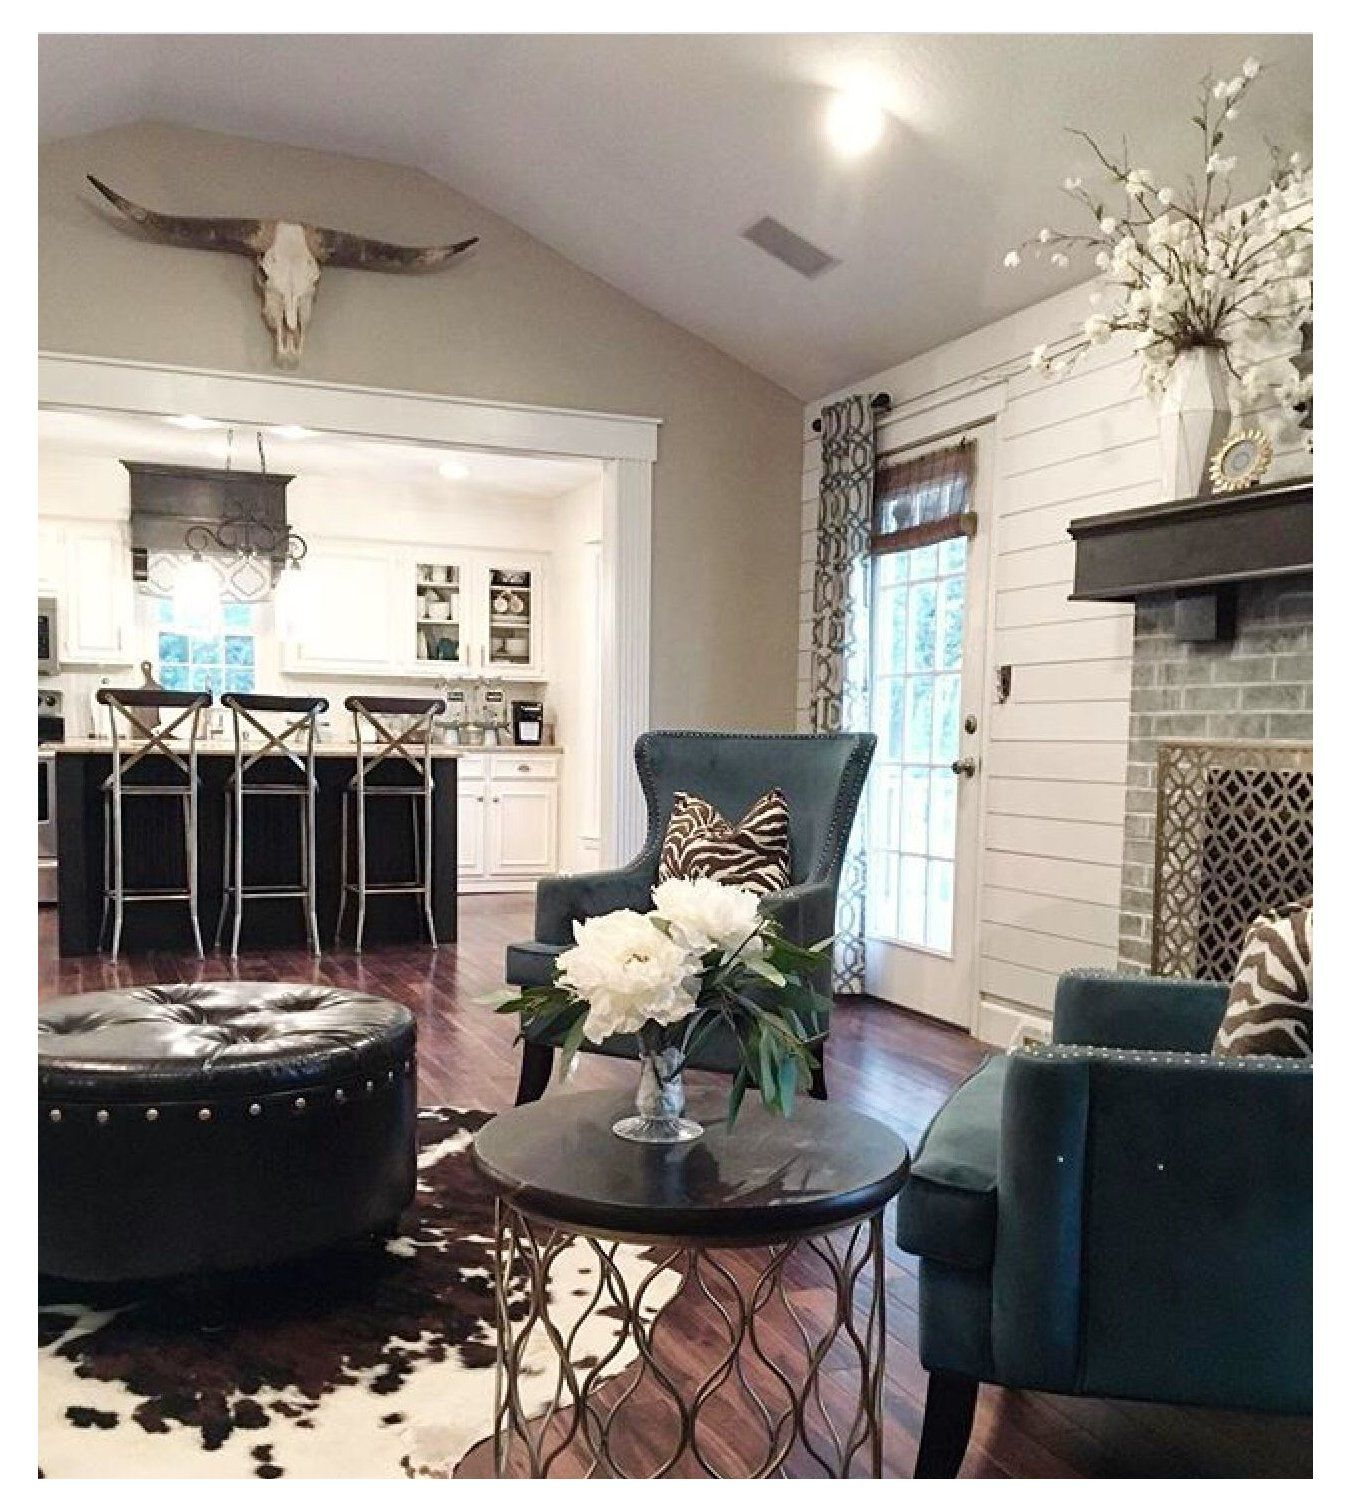 Pin By Kayla Saffell On Home Decor Cowhide Rug Living Room Farm House Living Room Rugs In Living Room